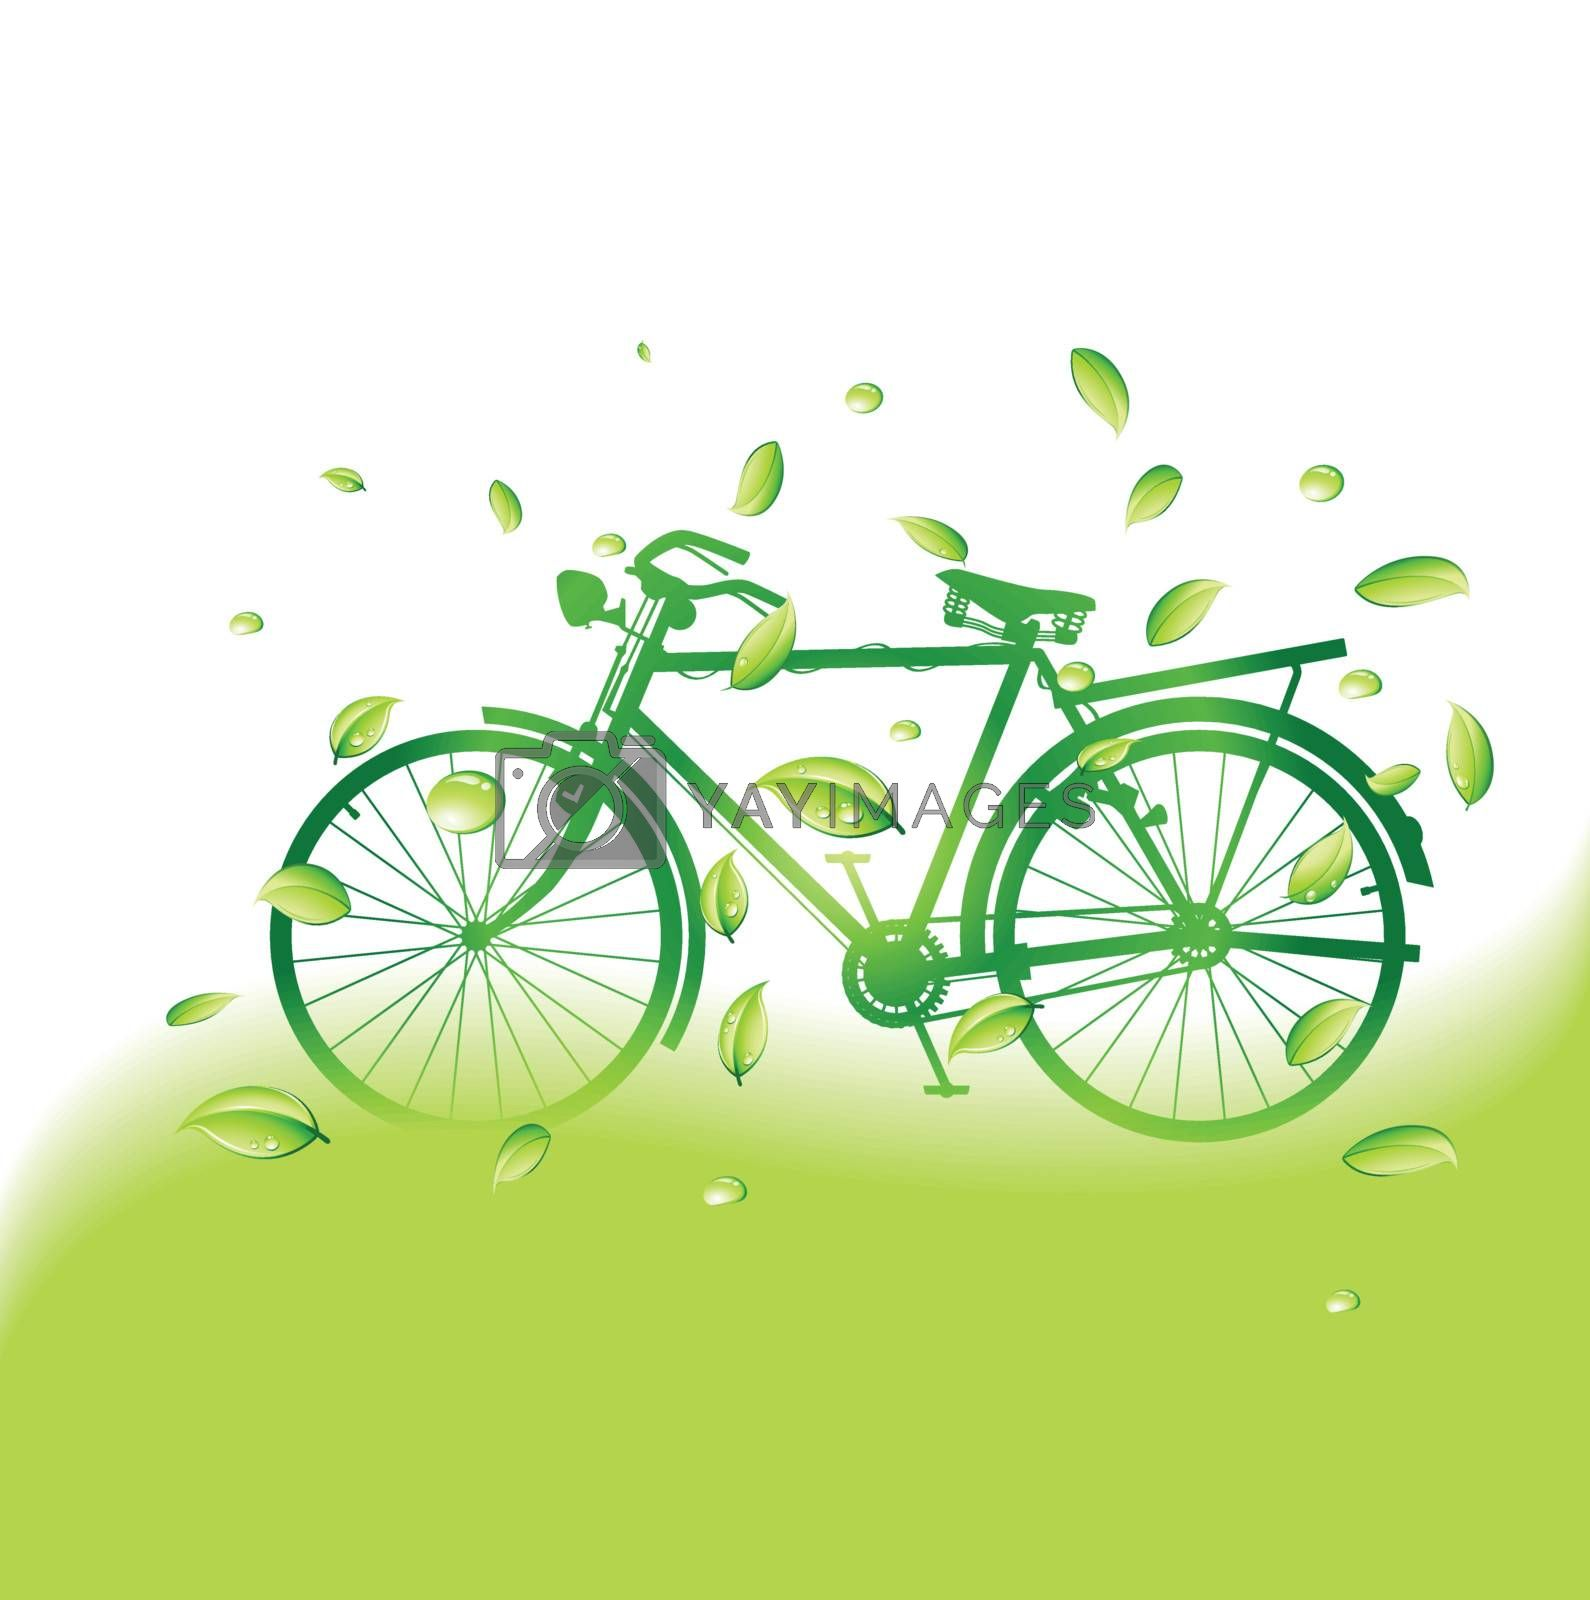 green bike with eco background by nirots